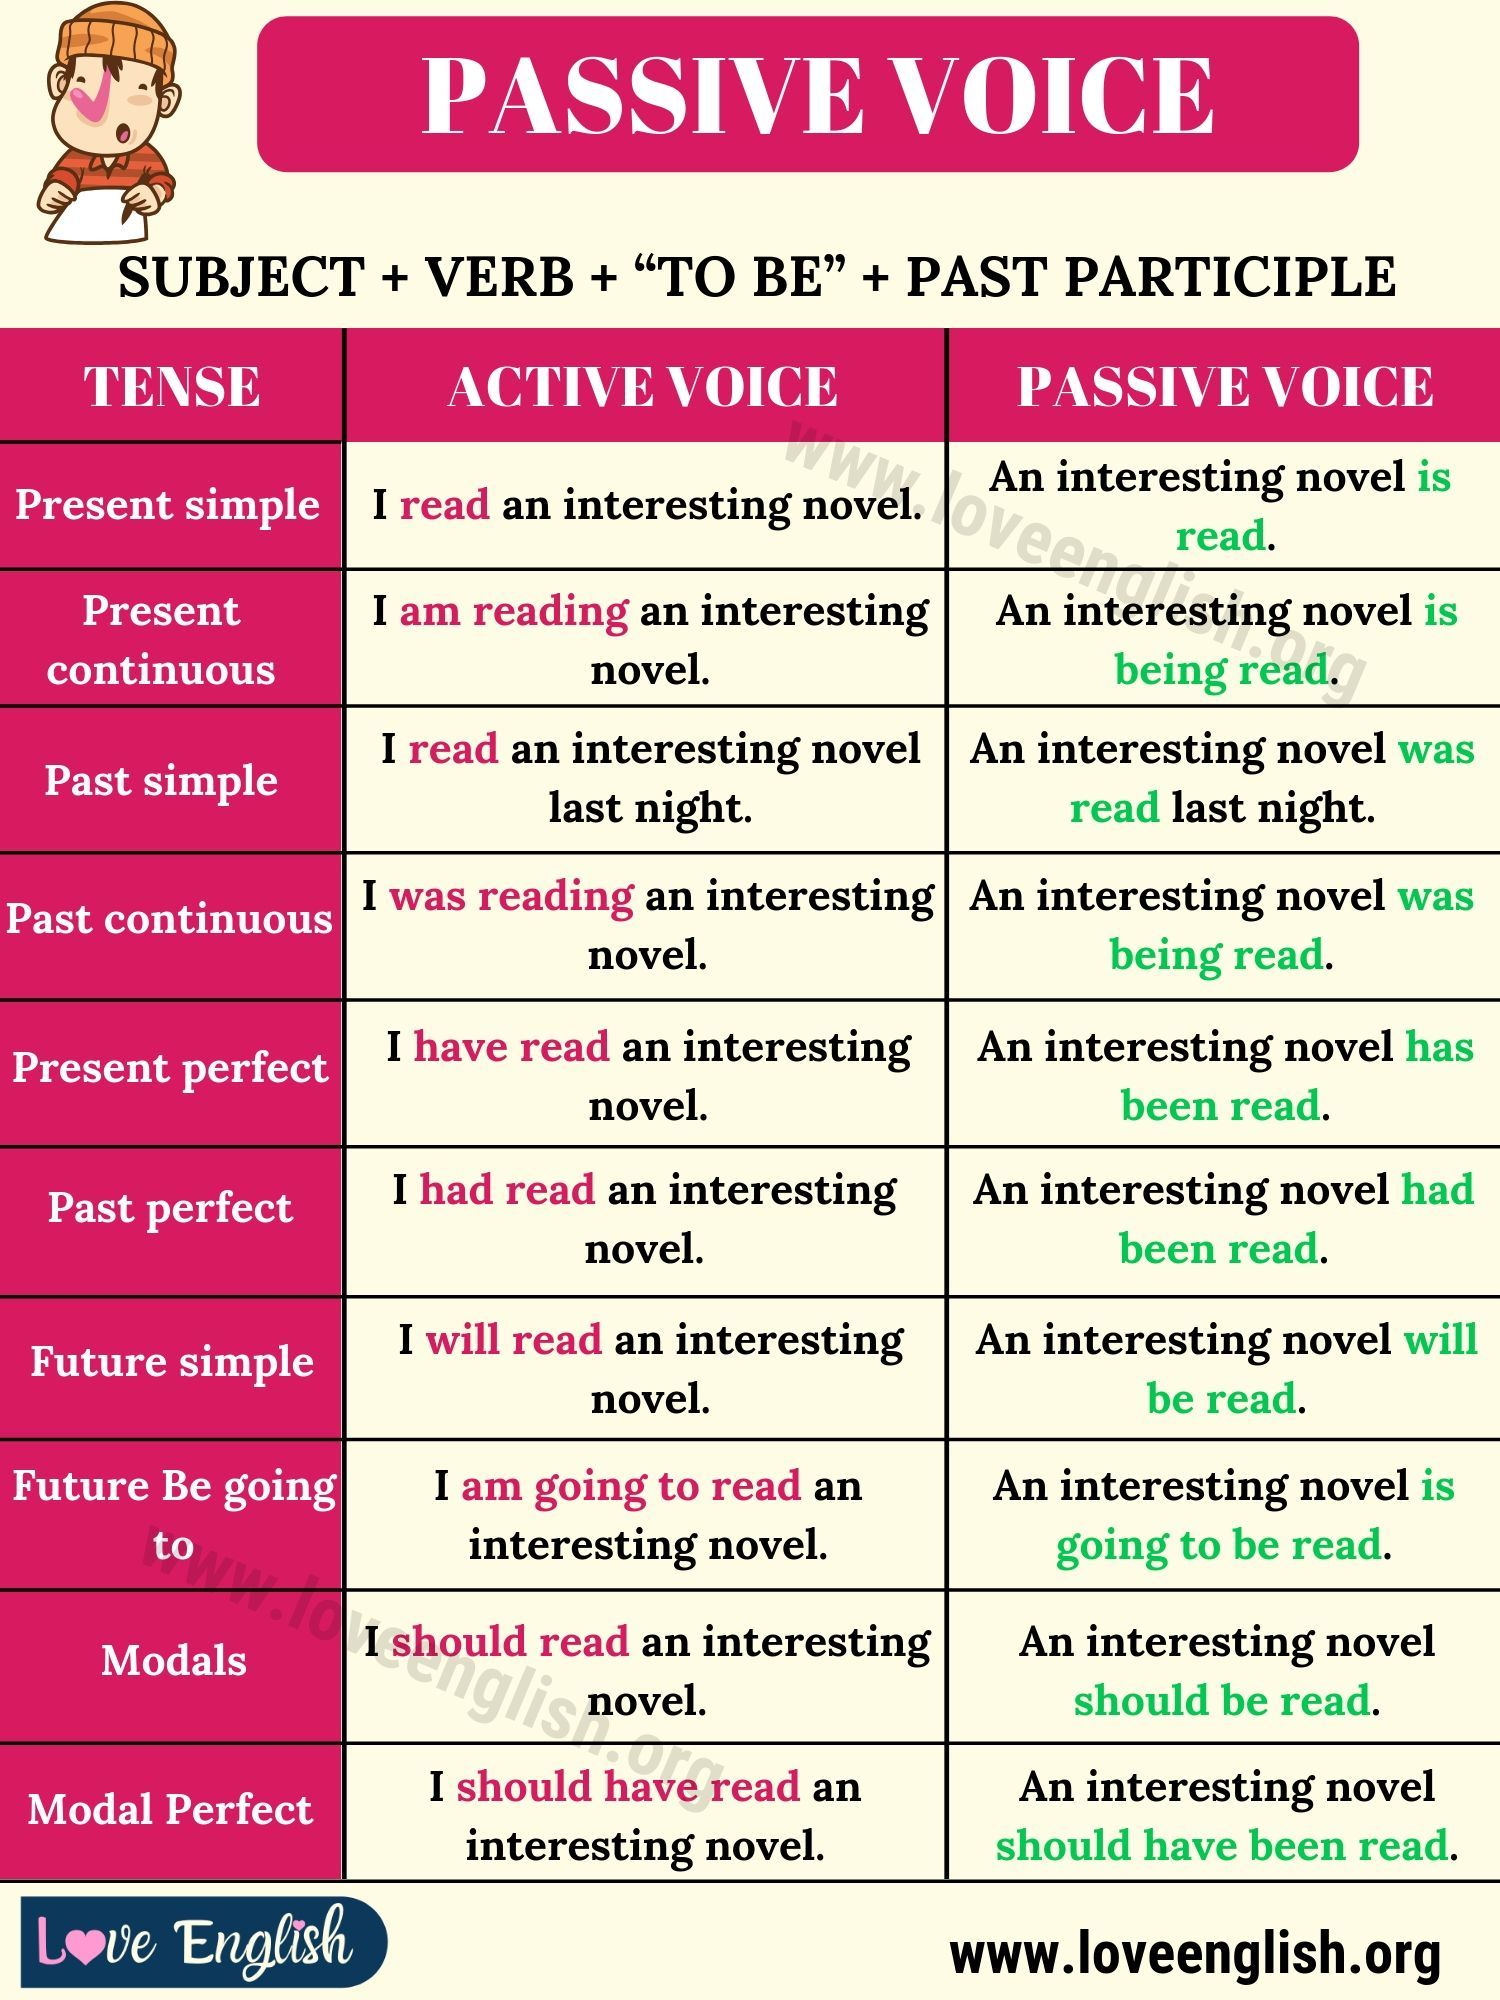 Passive Voice Definition Examples Of Active And Passive Voice Love English Learn English Words English Grammar Active And Passive Voice